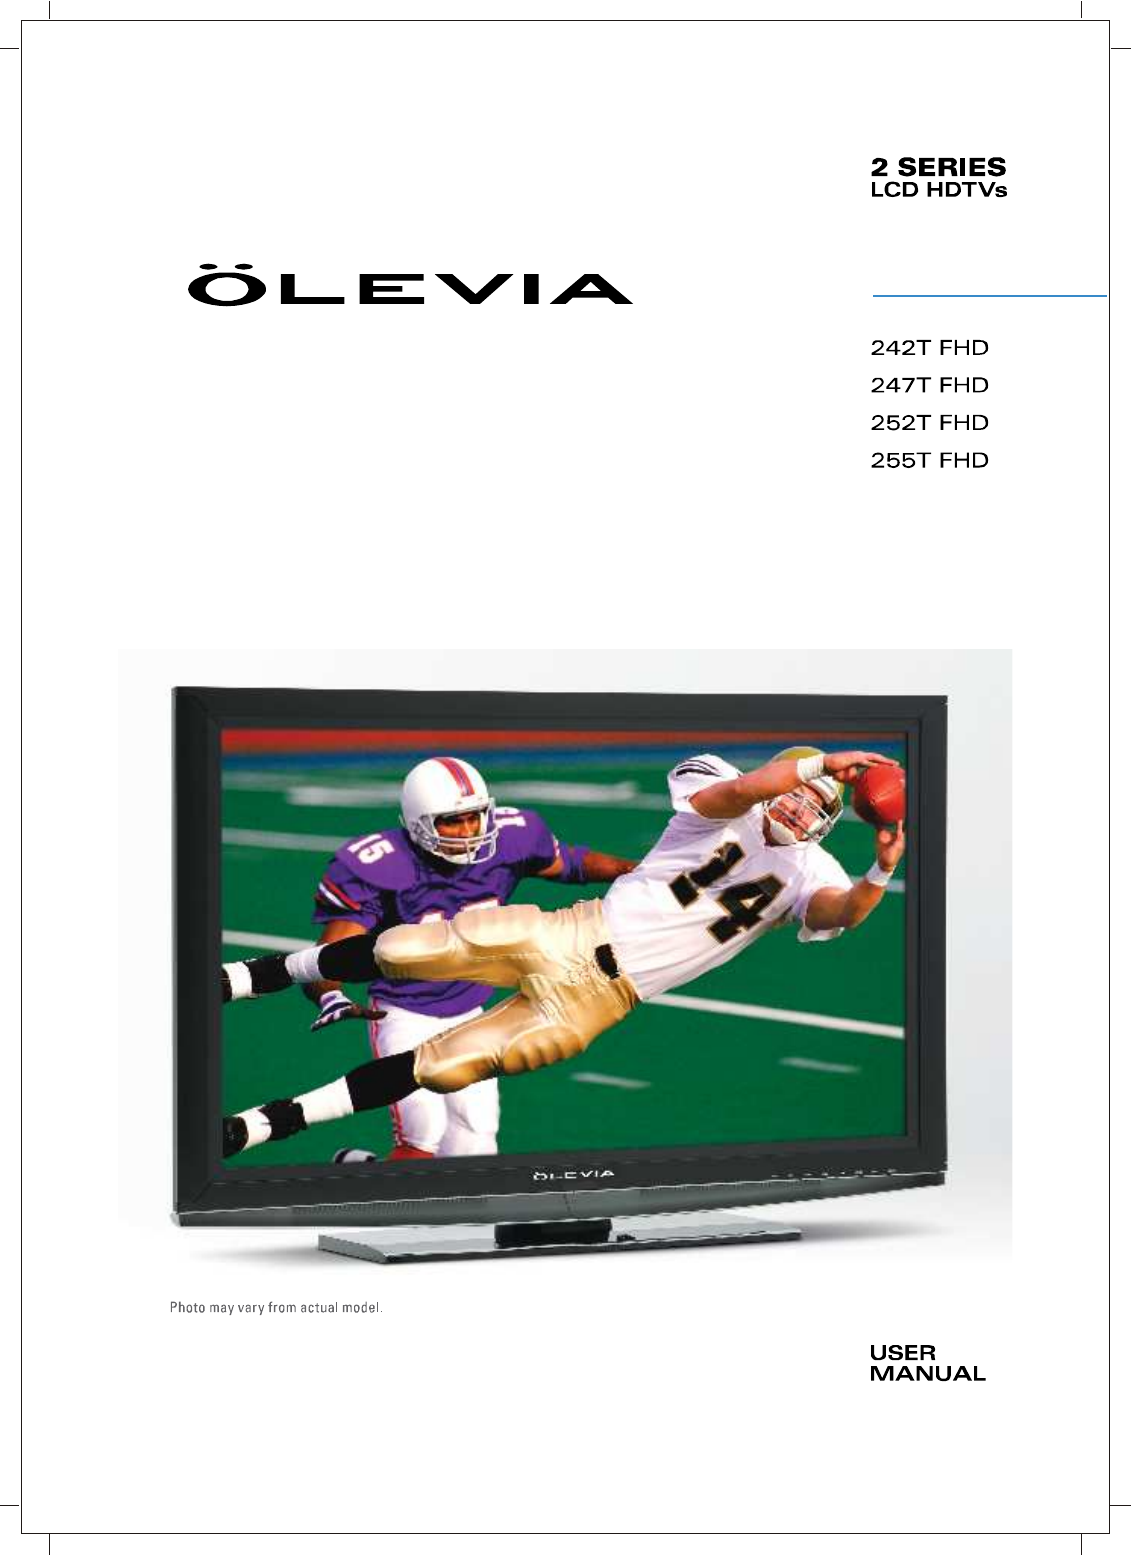 olevia flat panel television 242t fhd user guide manualsonline com rh tv manualsonline com